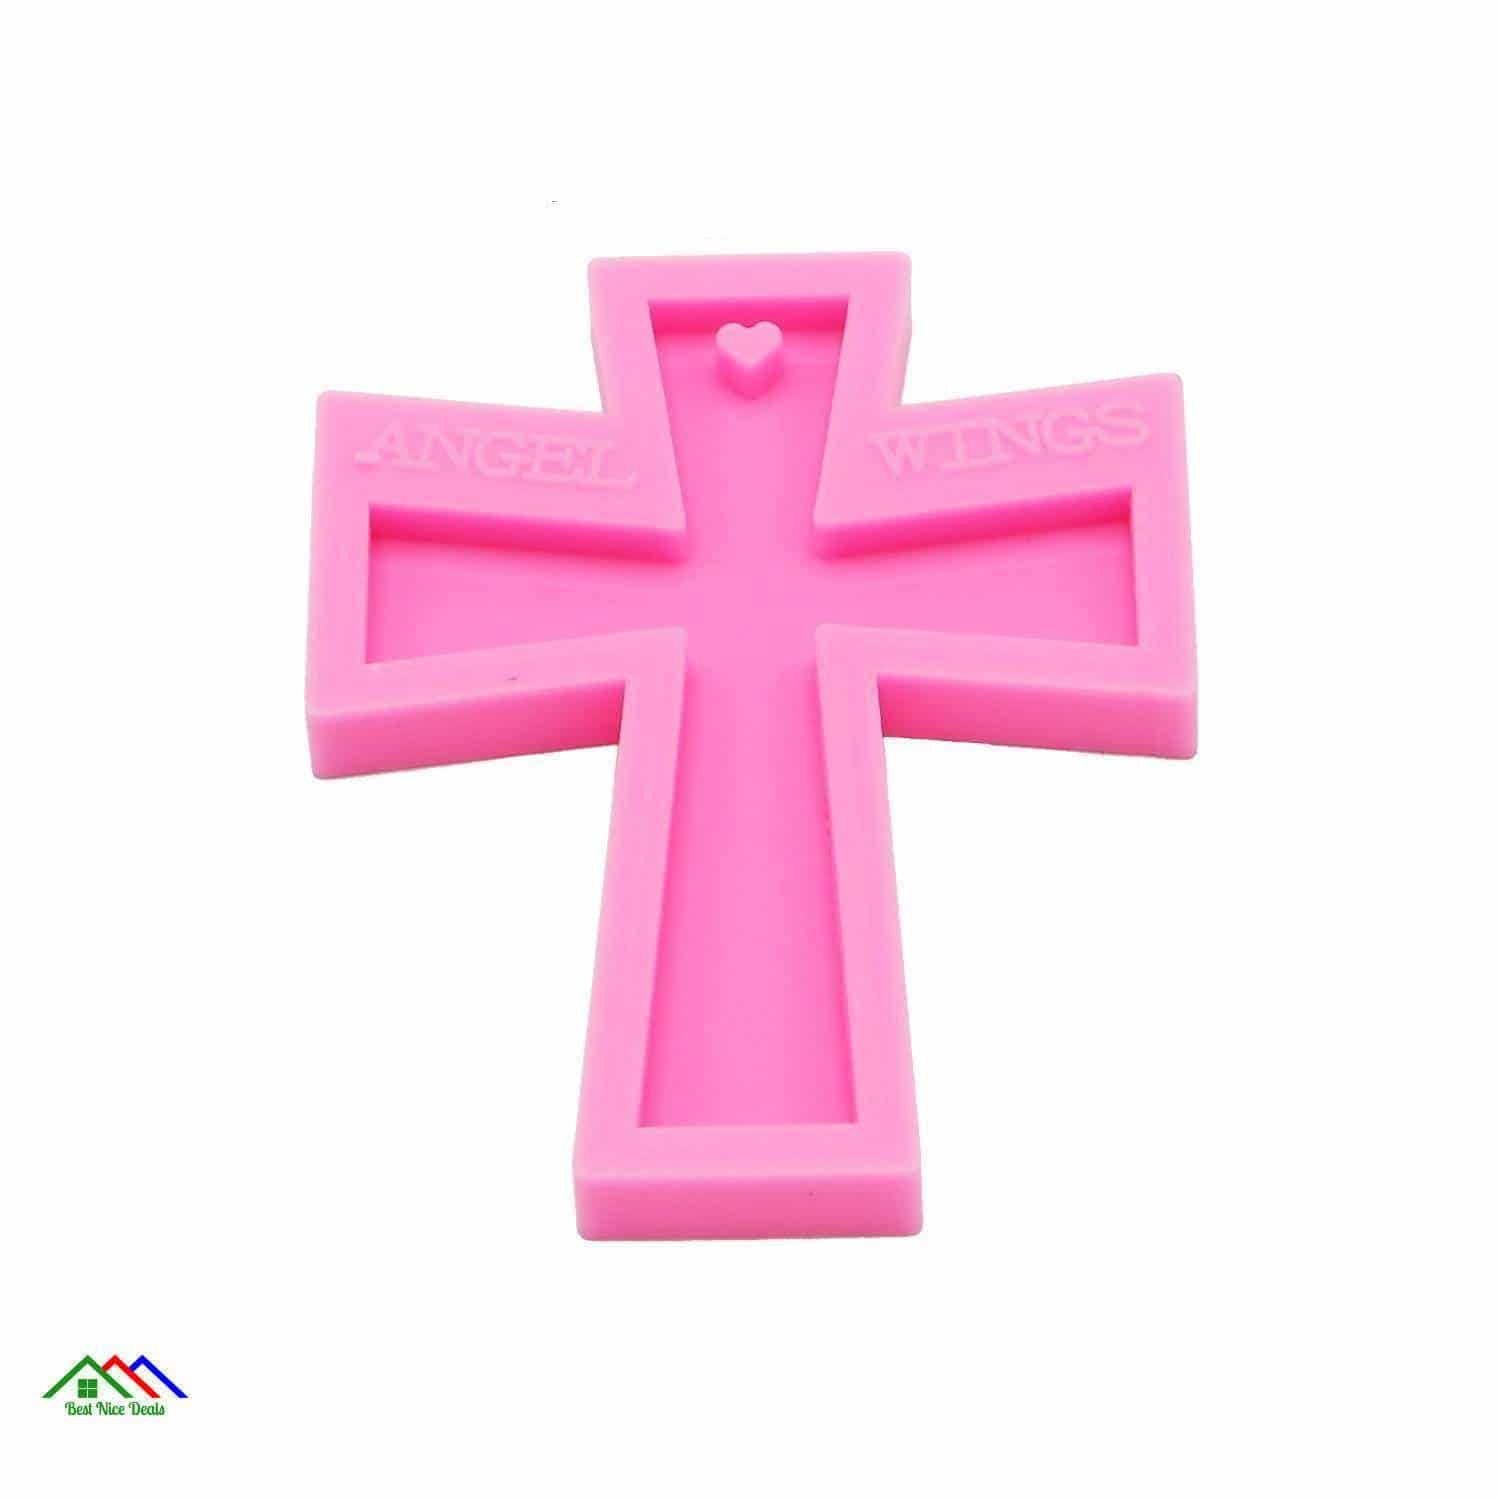 Cross Patterned Square Silicone Religious Keychain Kitchen Silicone Molds